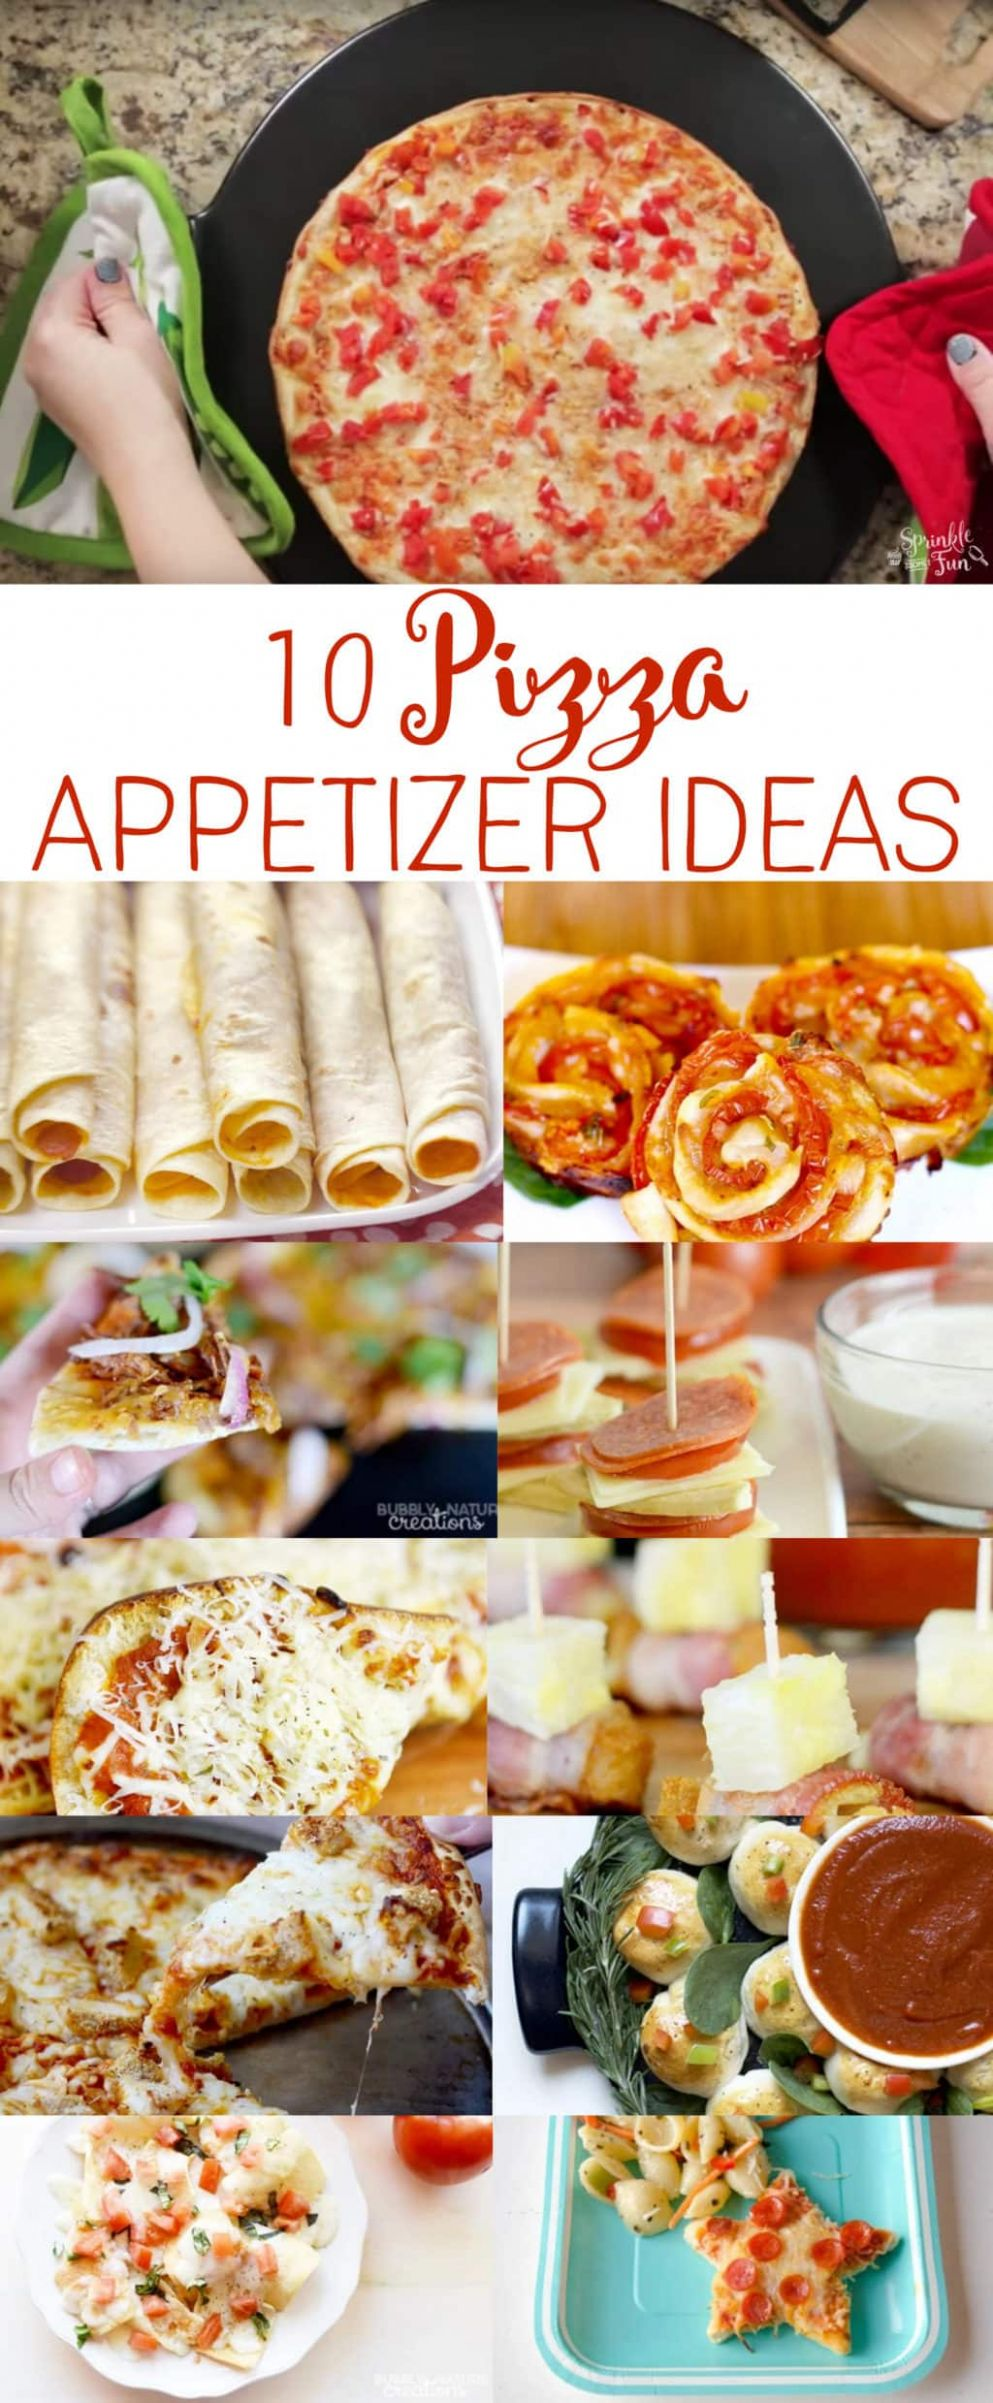 8 Pizza Appetizer Recipes for Easy Entertaining ⋆ Sprinkle Some Fun - Easy Recipes Entertaining